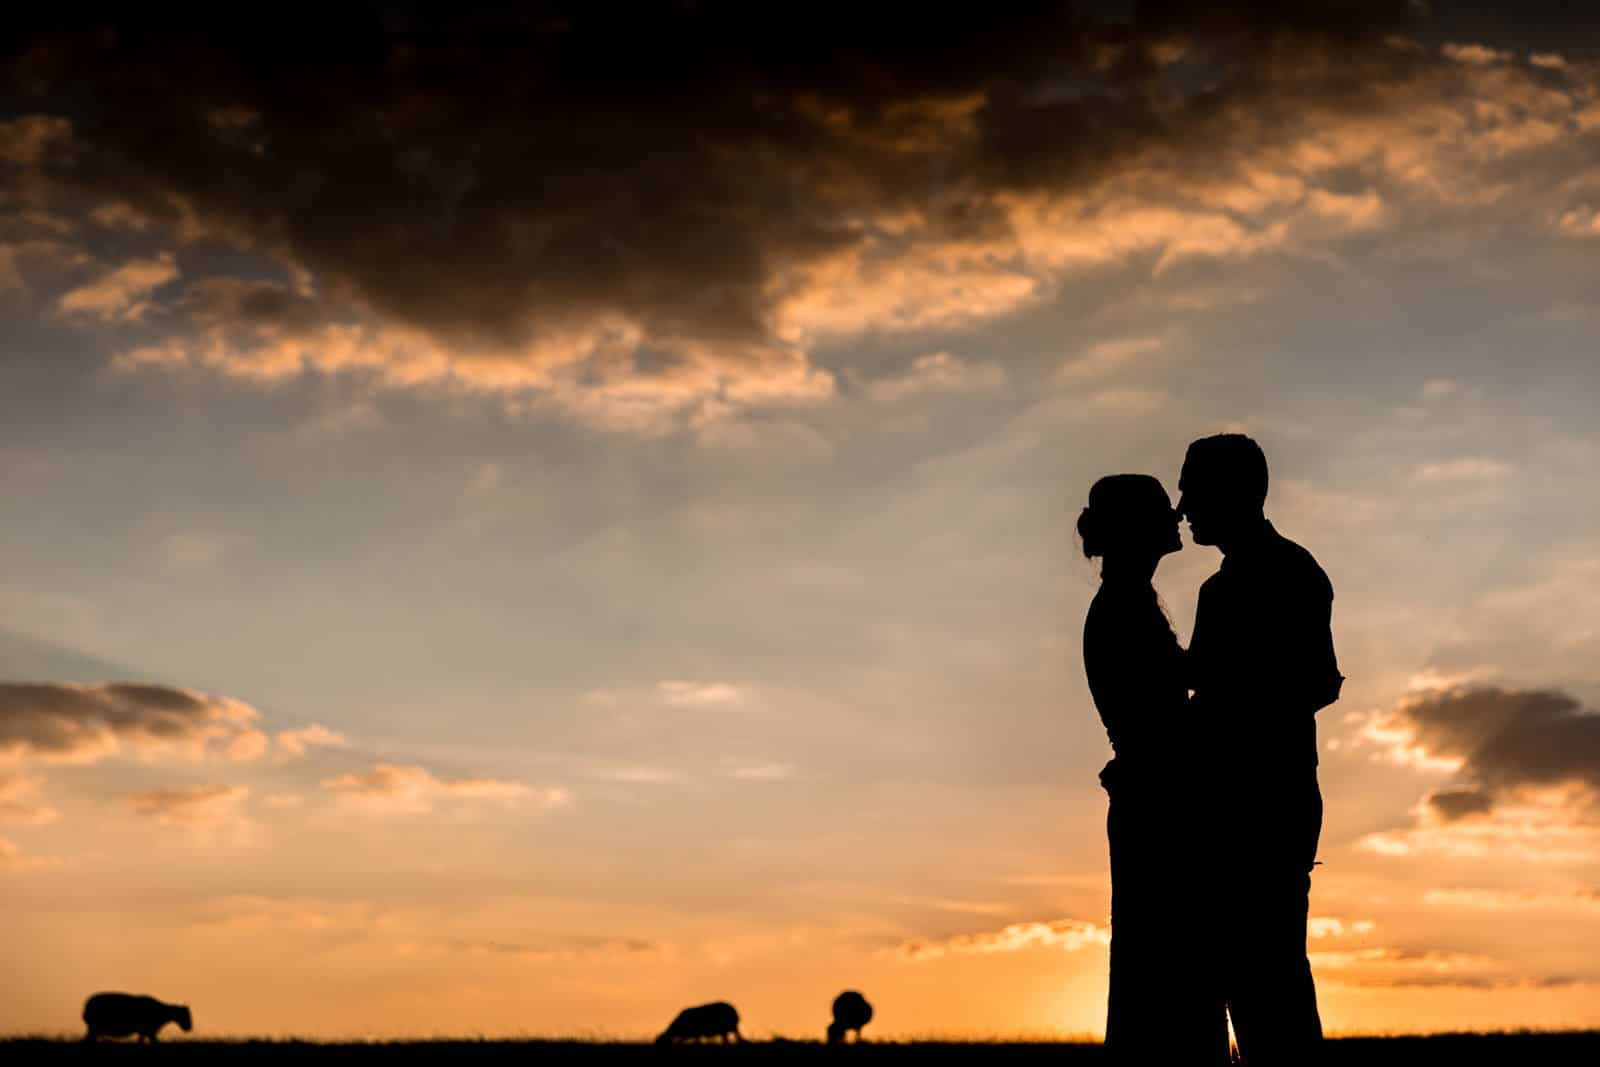 Dodford Manor silhouette of couple and sheep, an incredible photo